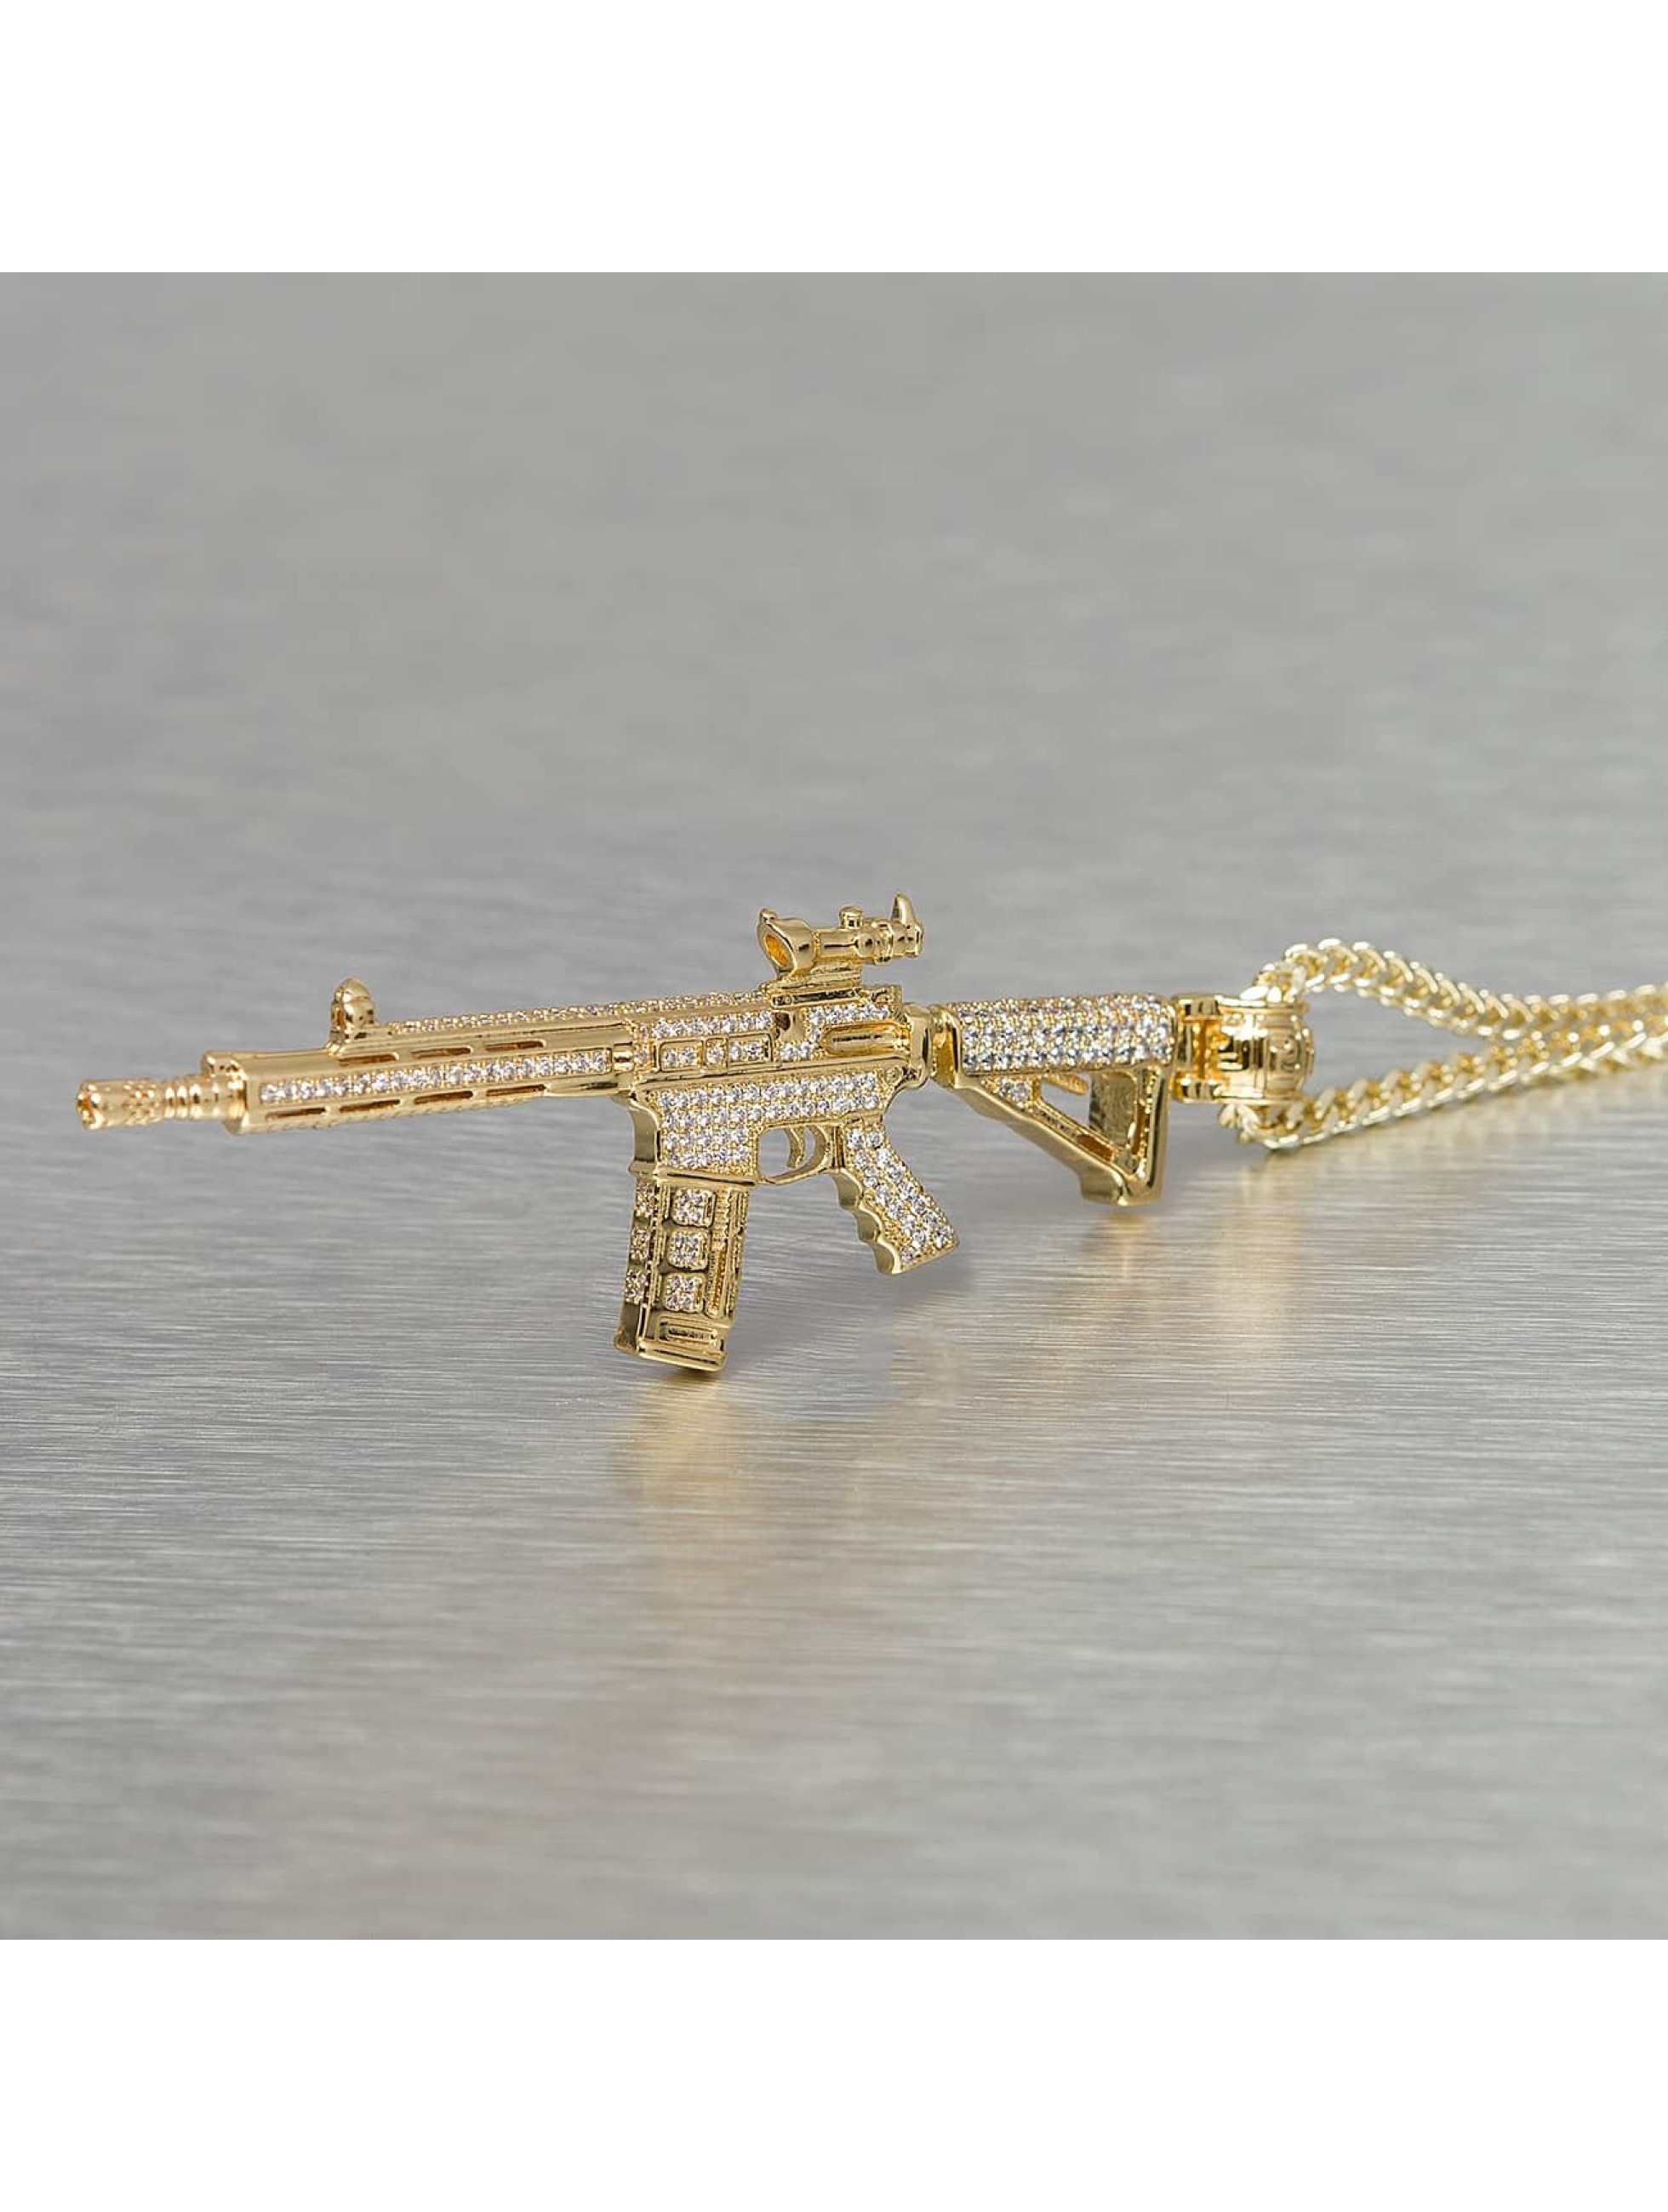 KING ICE Necklace Gold_Plated CZ Studded M4 Long Range Assault Rifle gold colored